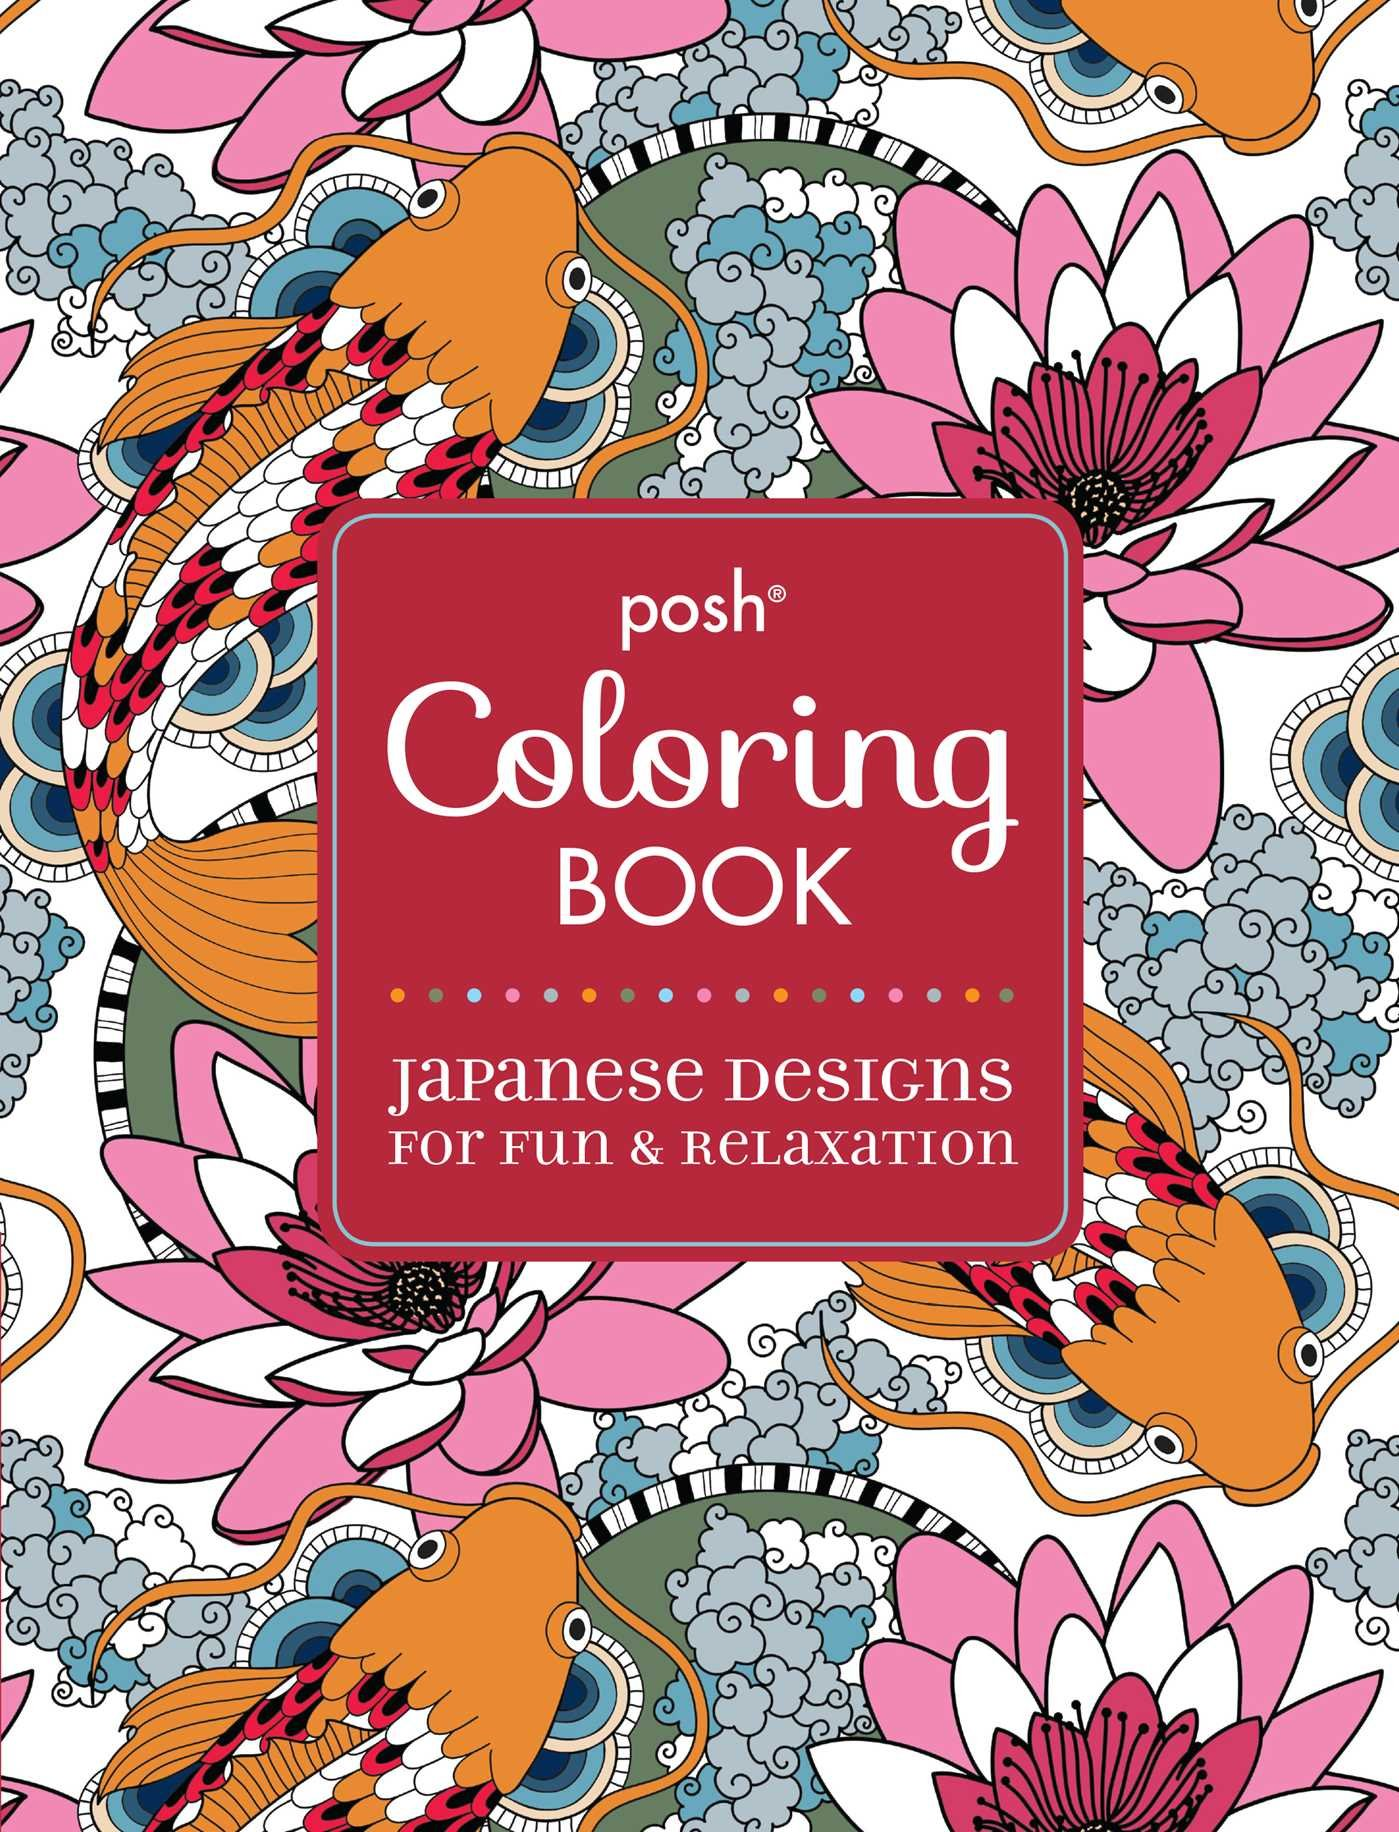 Adult Coloring Books Christmas Gift Guide For Adults Download Image Anti Stress Book